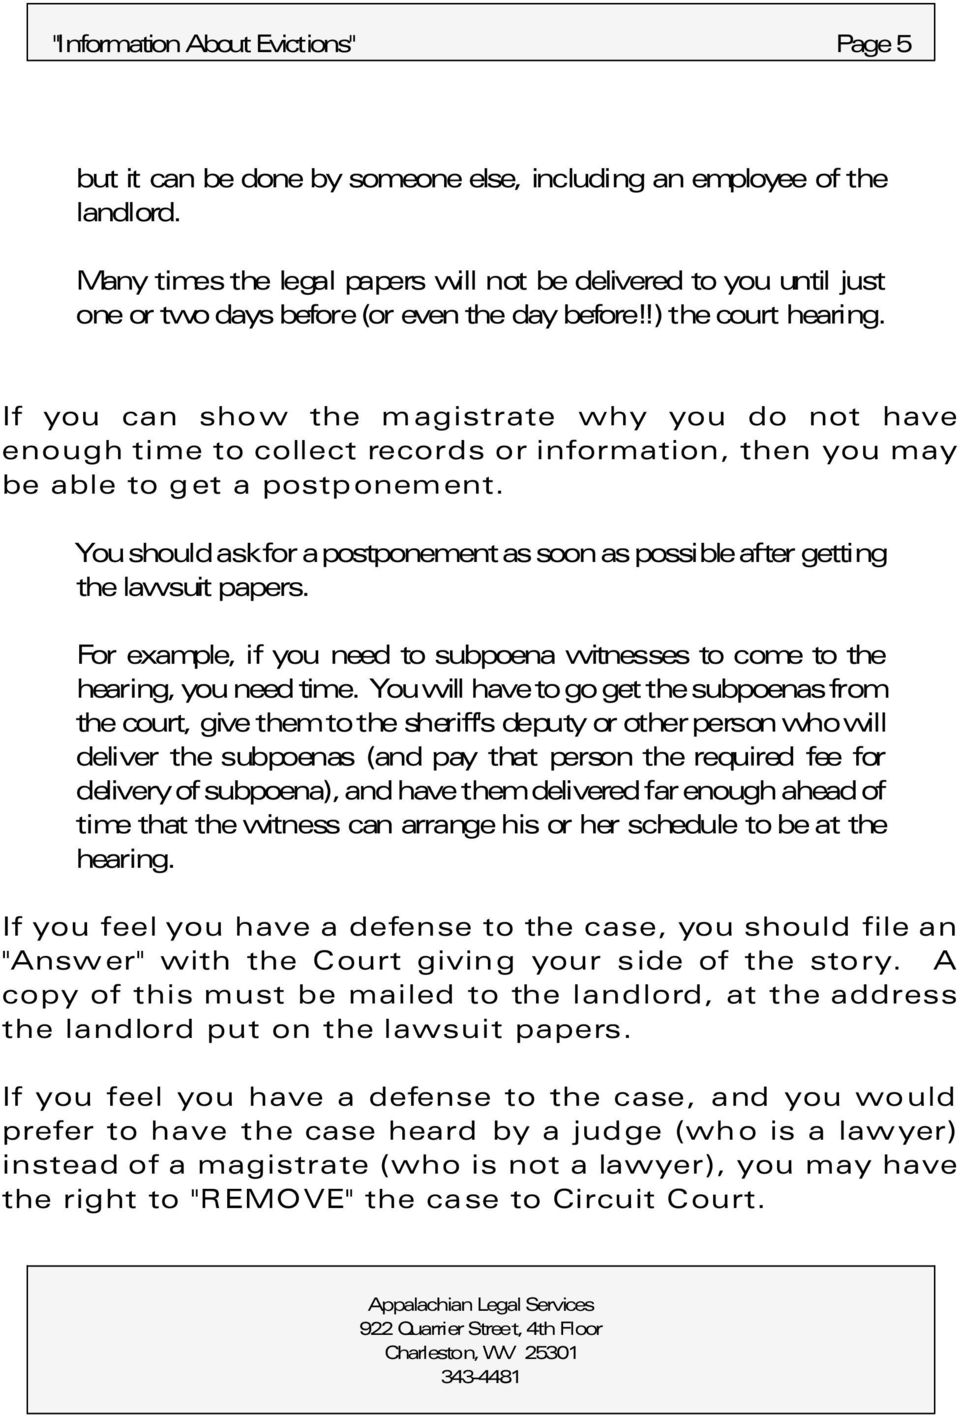 If you can show the magistrate why you do not have enough time to collect records or information, then you may be able to get a postponement.